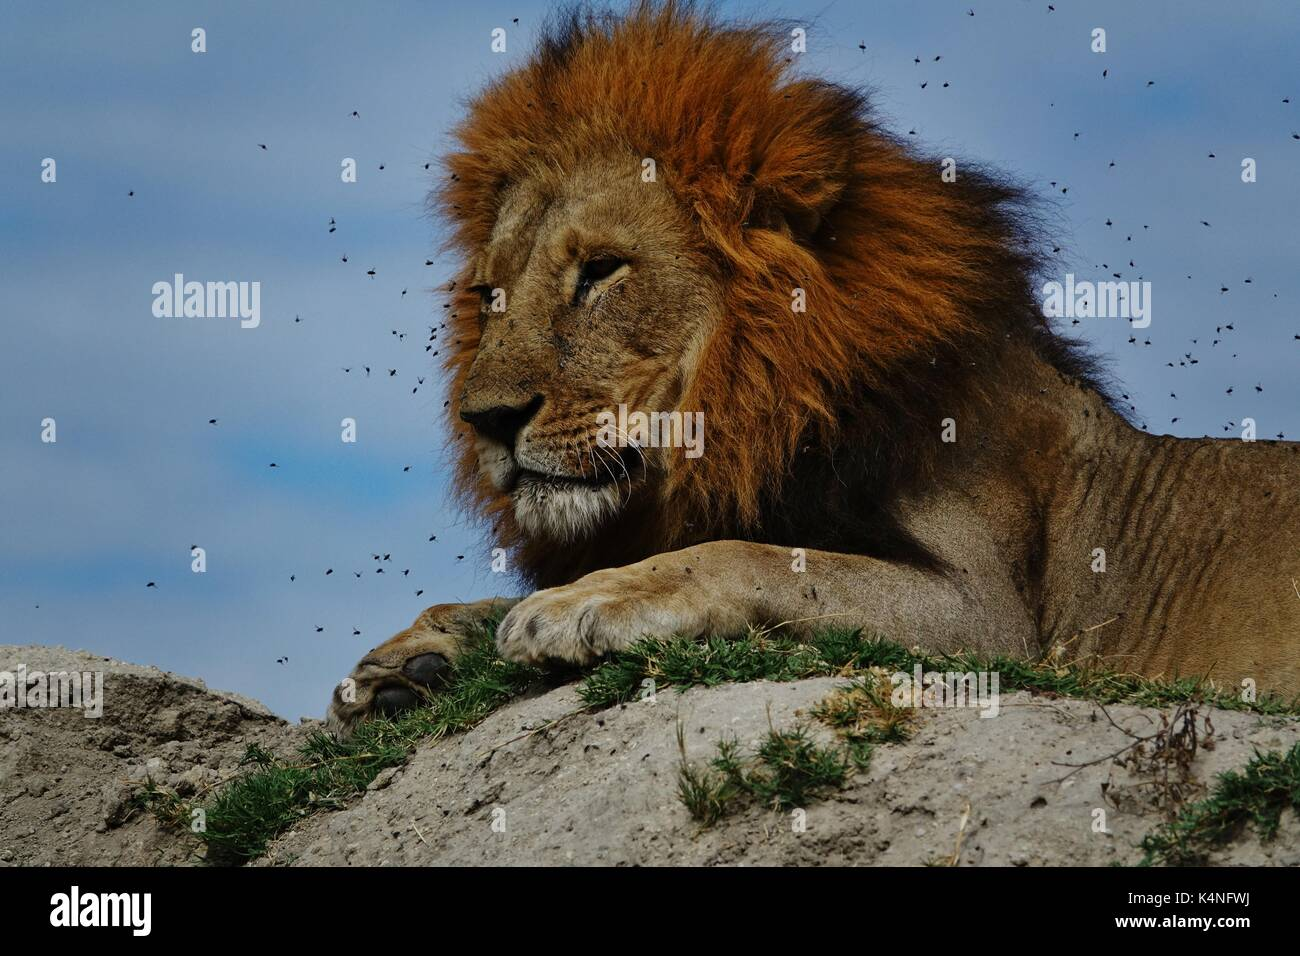 Lion head with flies - Stock Image